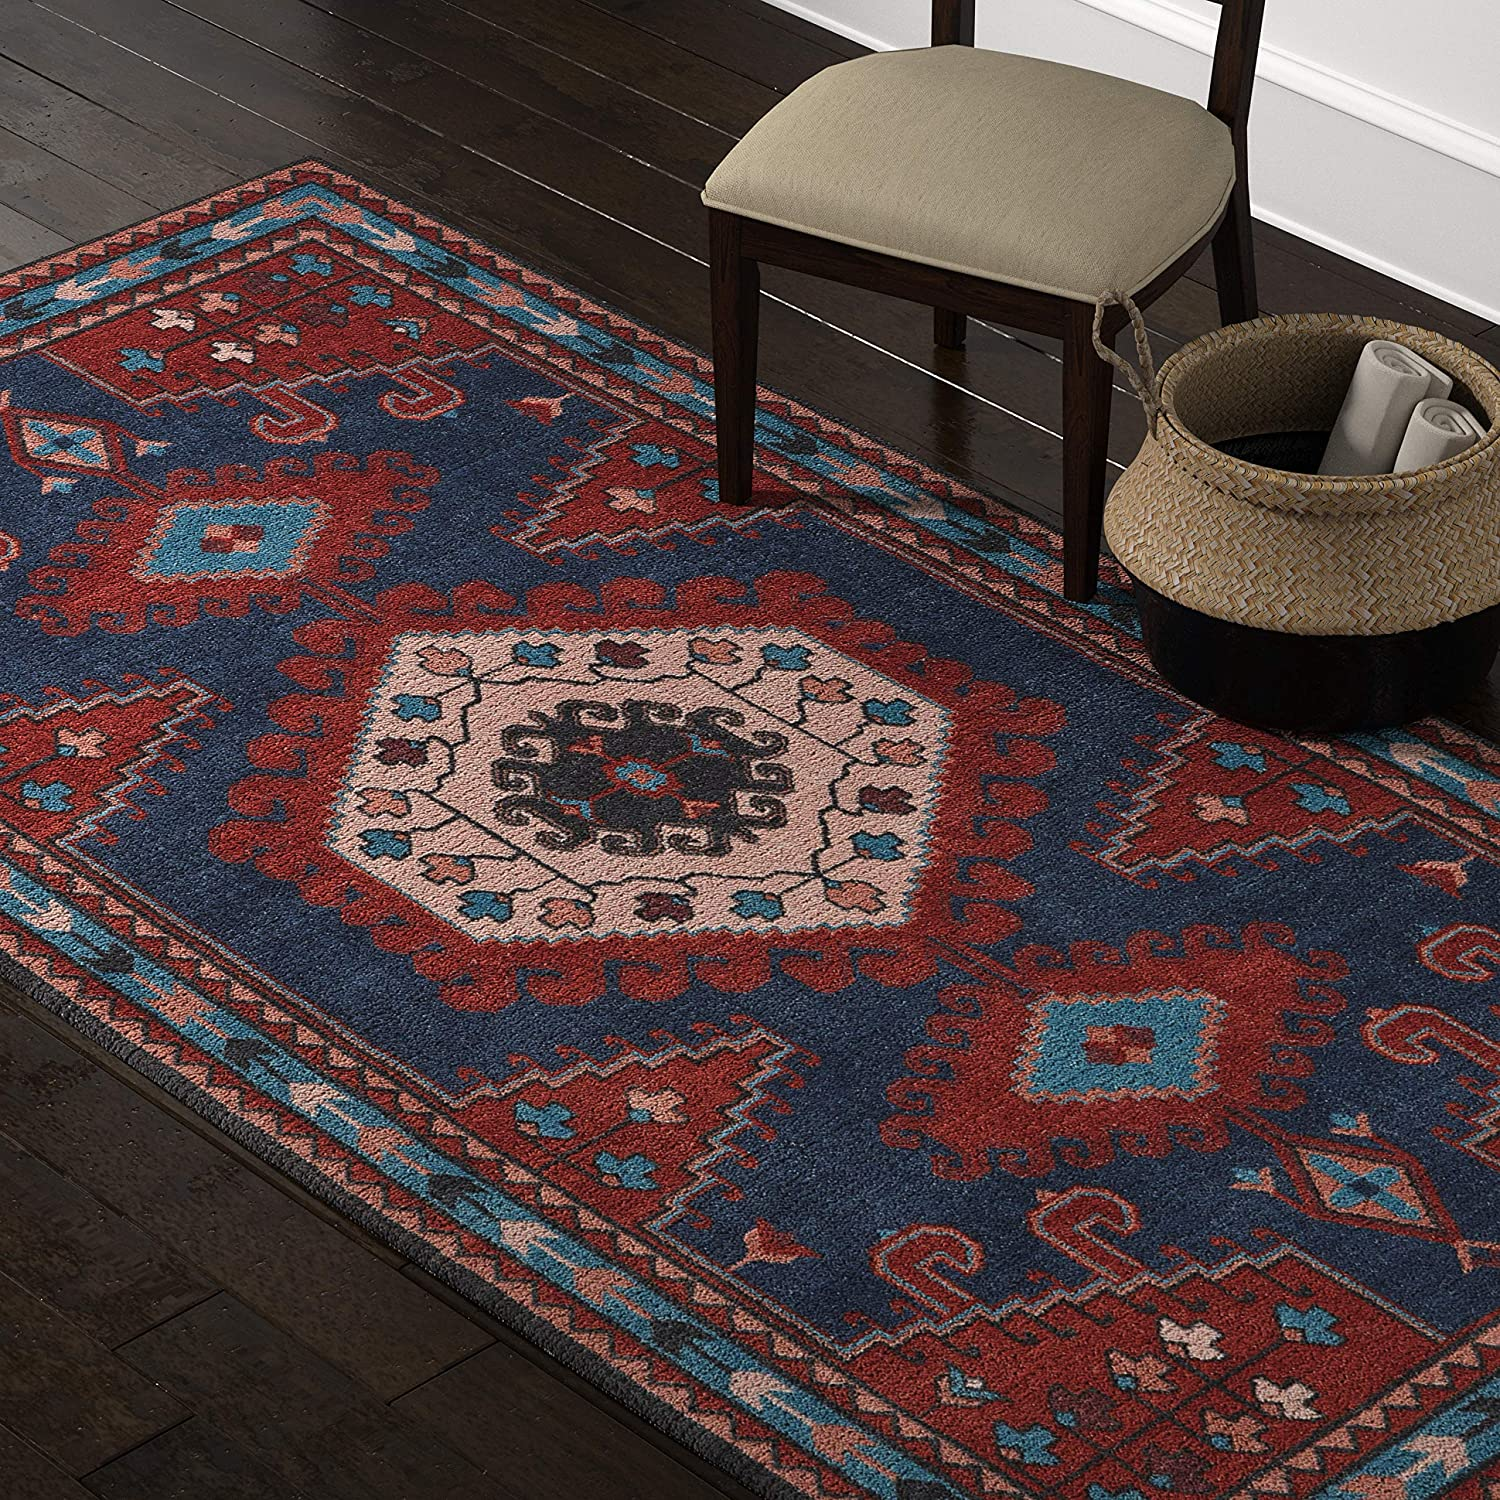 Amazon Brand – Stone & Beam Modern Persian Area Rug, 5 x 8 Foot, Blue and Red Multicolor